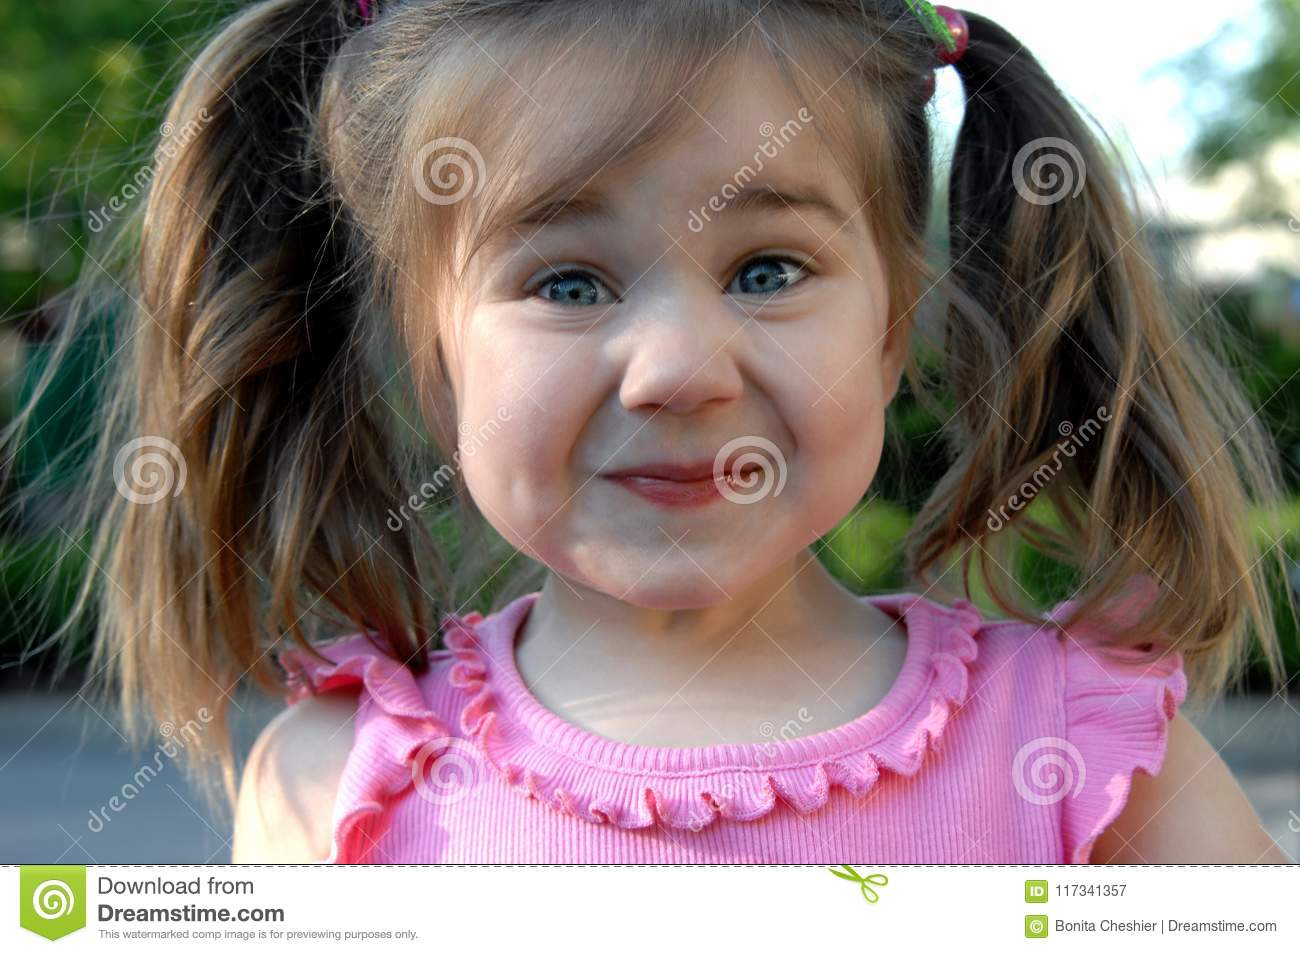 Little Girl Tries To Hold In Her Giggles As She Puts Face Into A Mirthful Smirk Has Pigtails And Pink Shirt